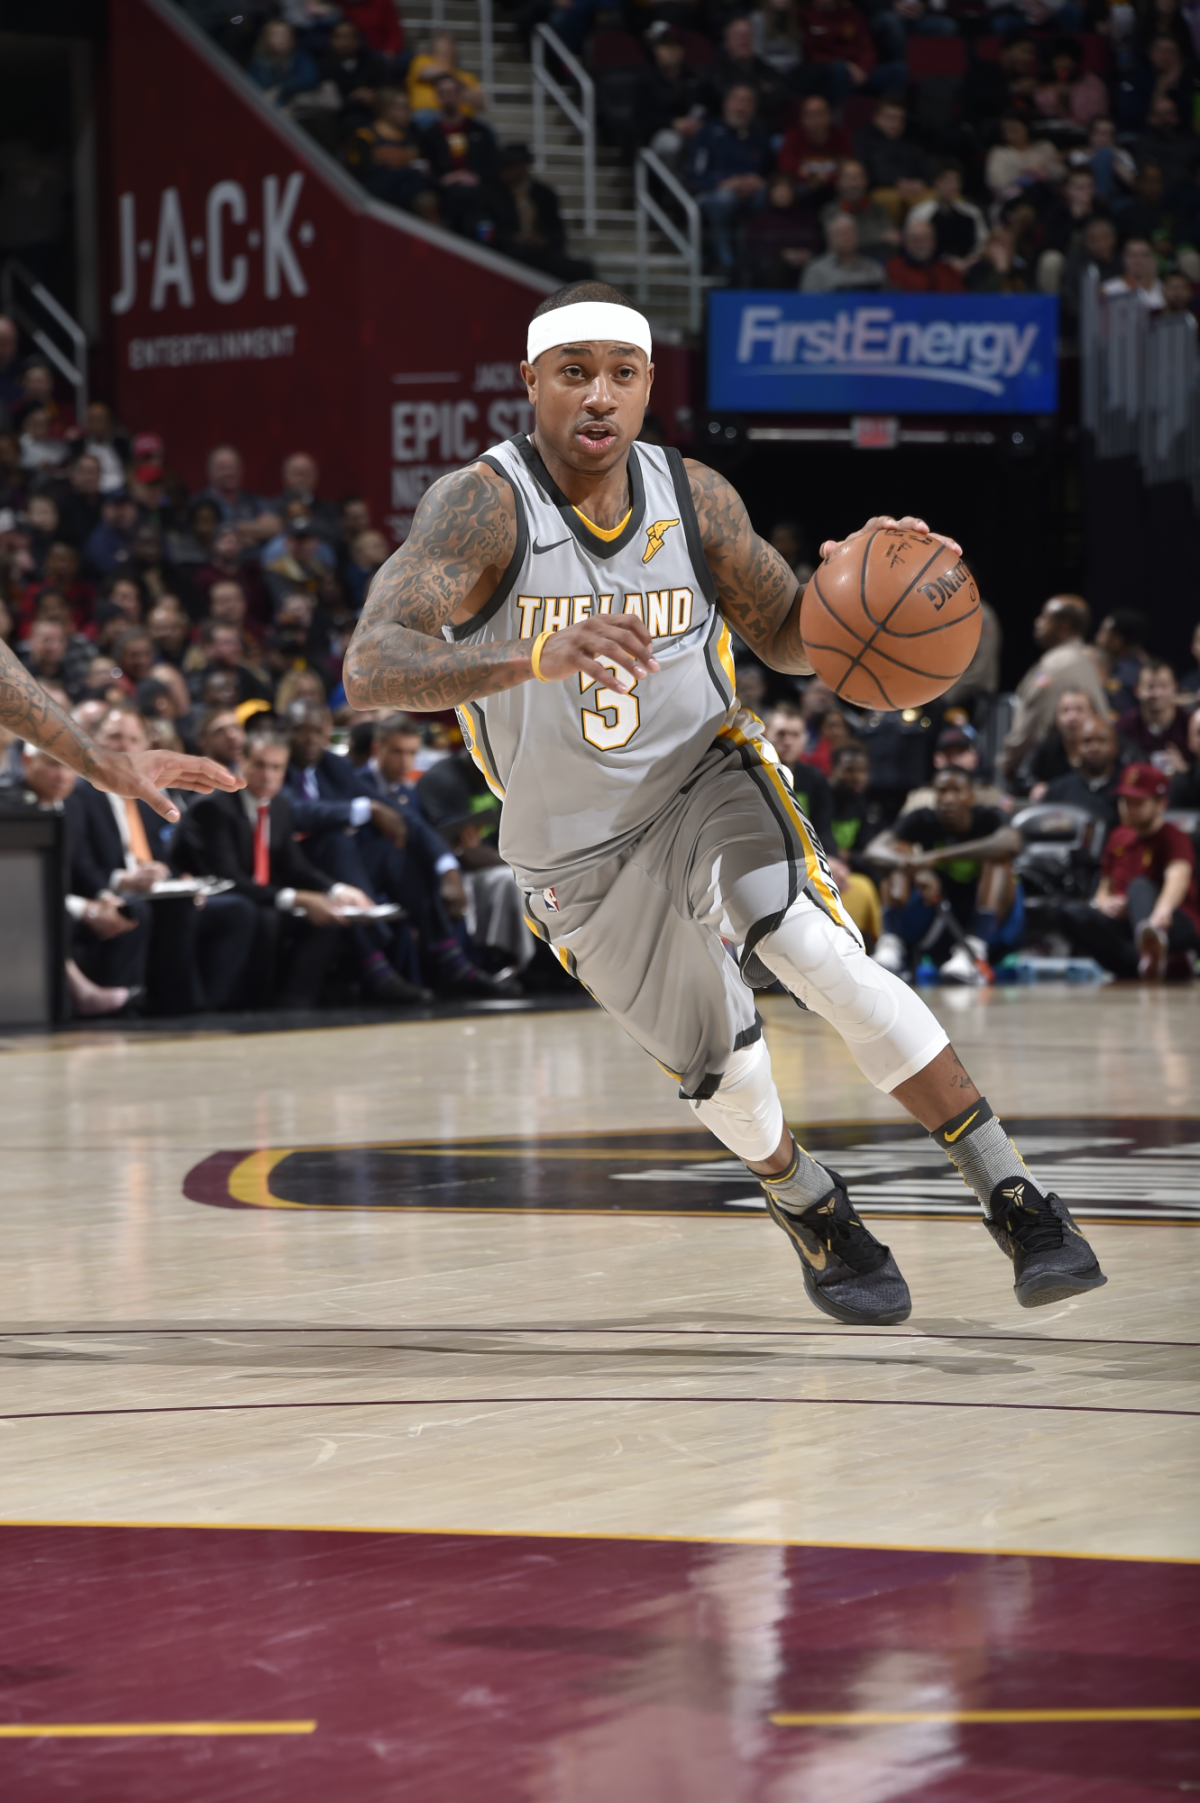 Isaiah Thomas while playing for the Cleveland Cavaliers.